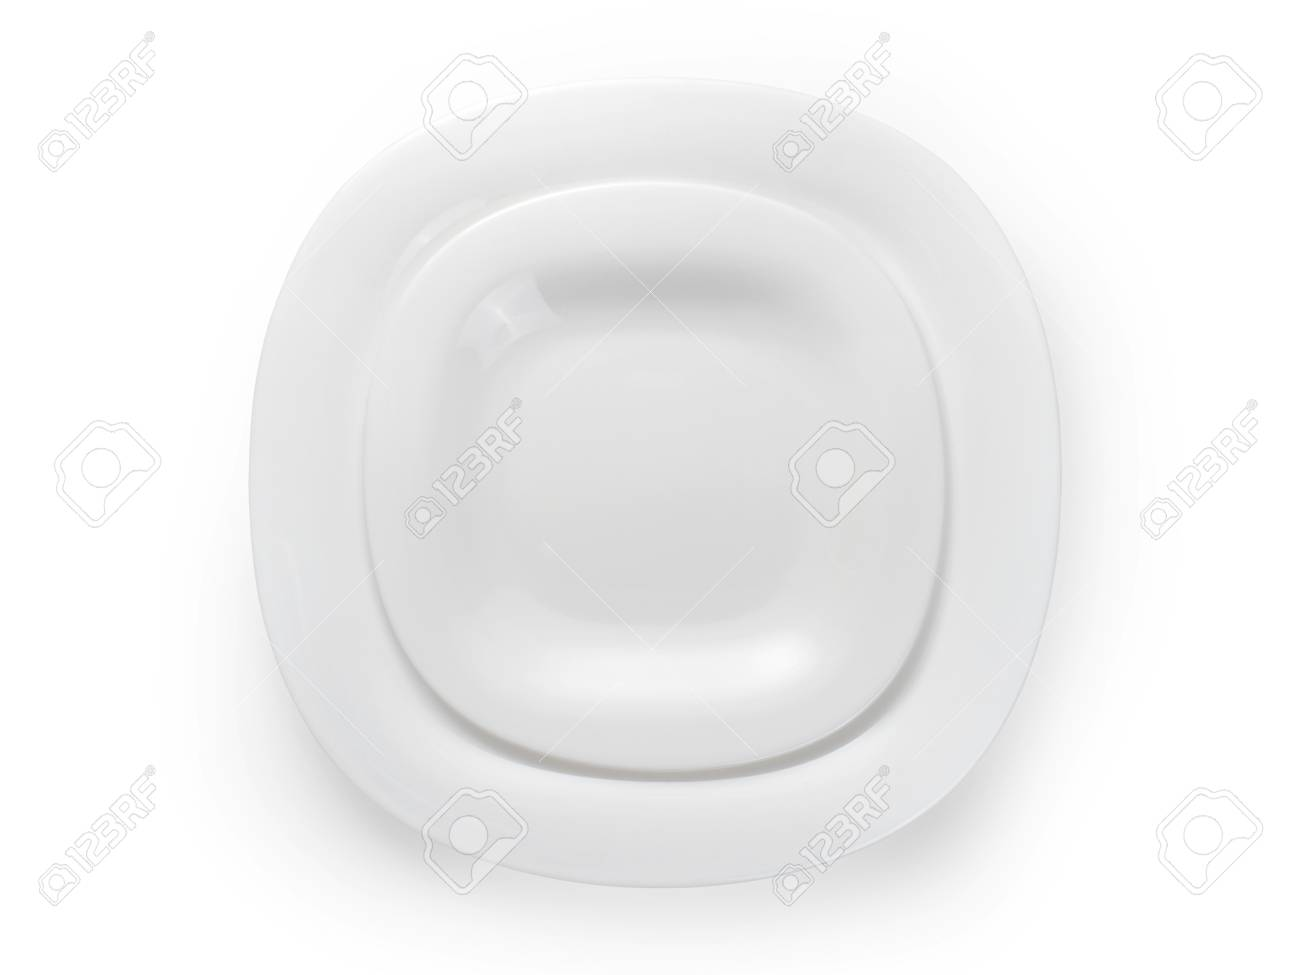 Stock Photo - Two white modern square plates. Table setting top view. Isolated on white clipping path included  sc 1 st  123RF.com & Two White Modern Square Plates. Table Setting Top View. Isolated ...